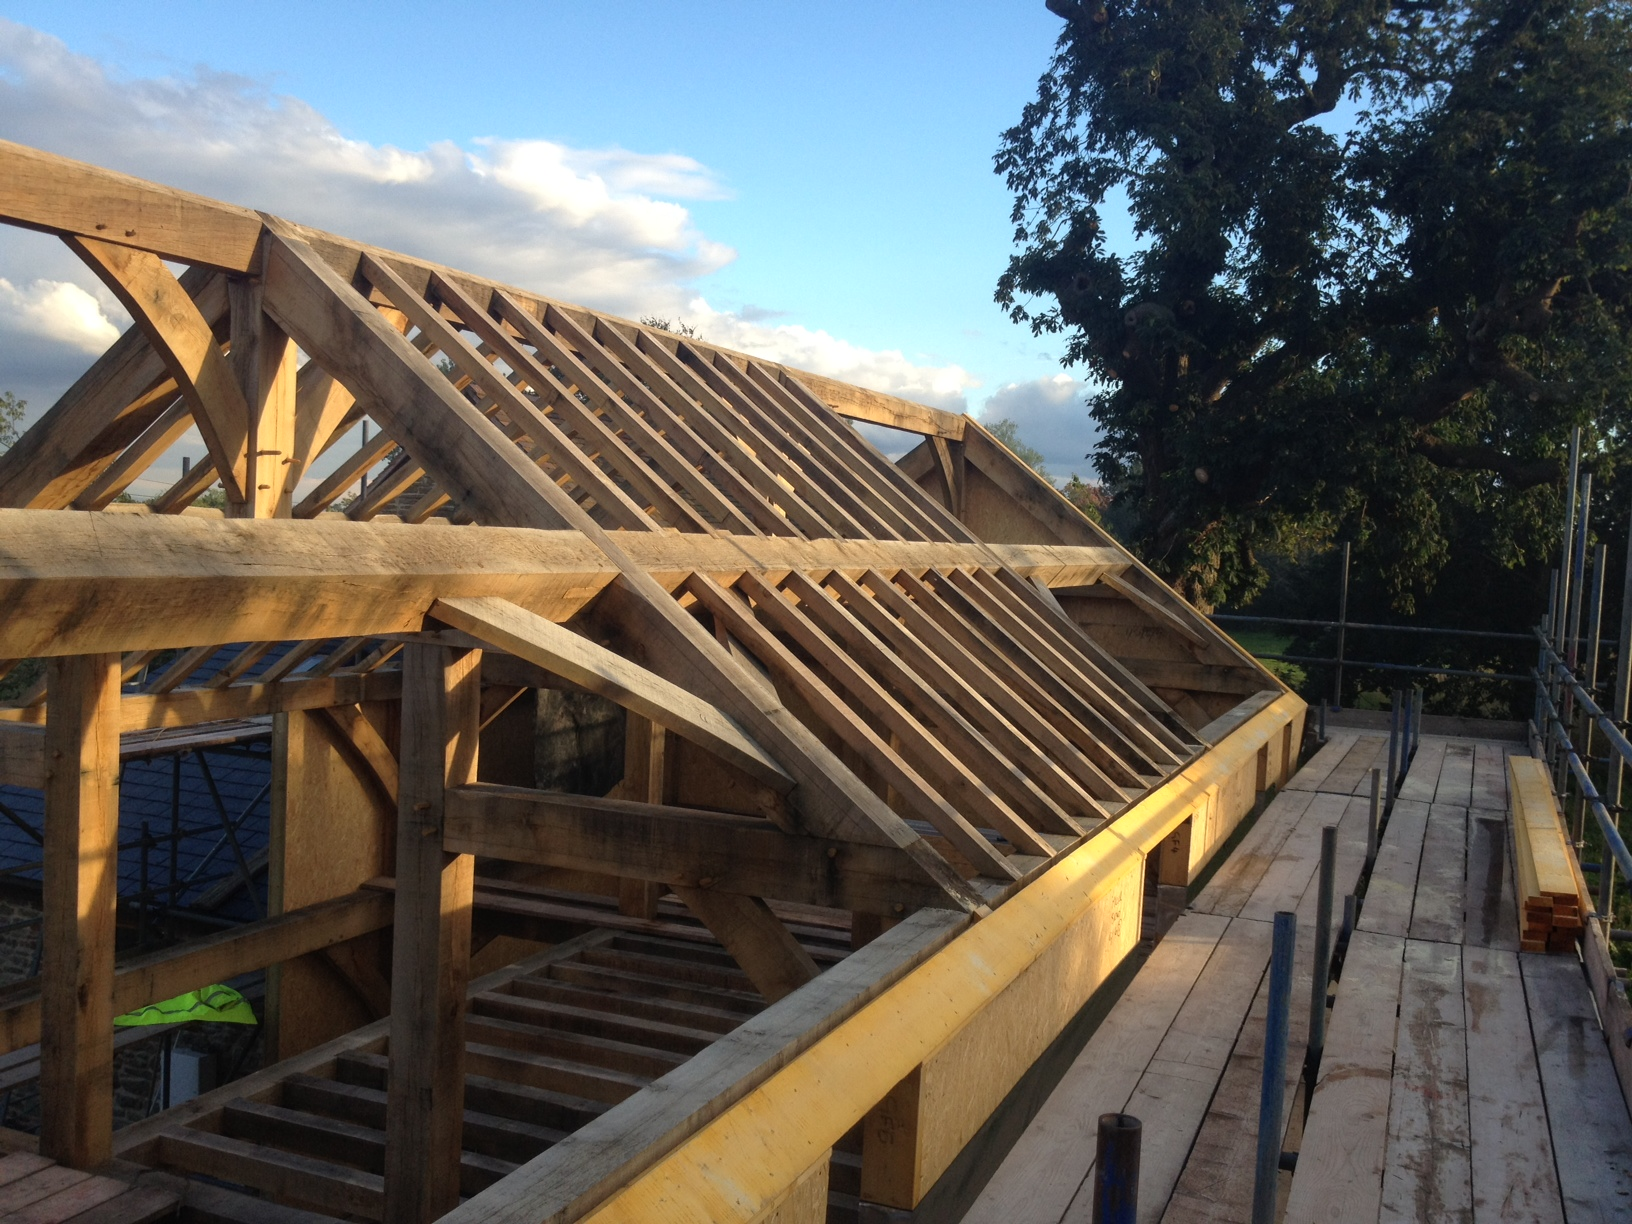 Oak frame clad in SIP Panels